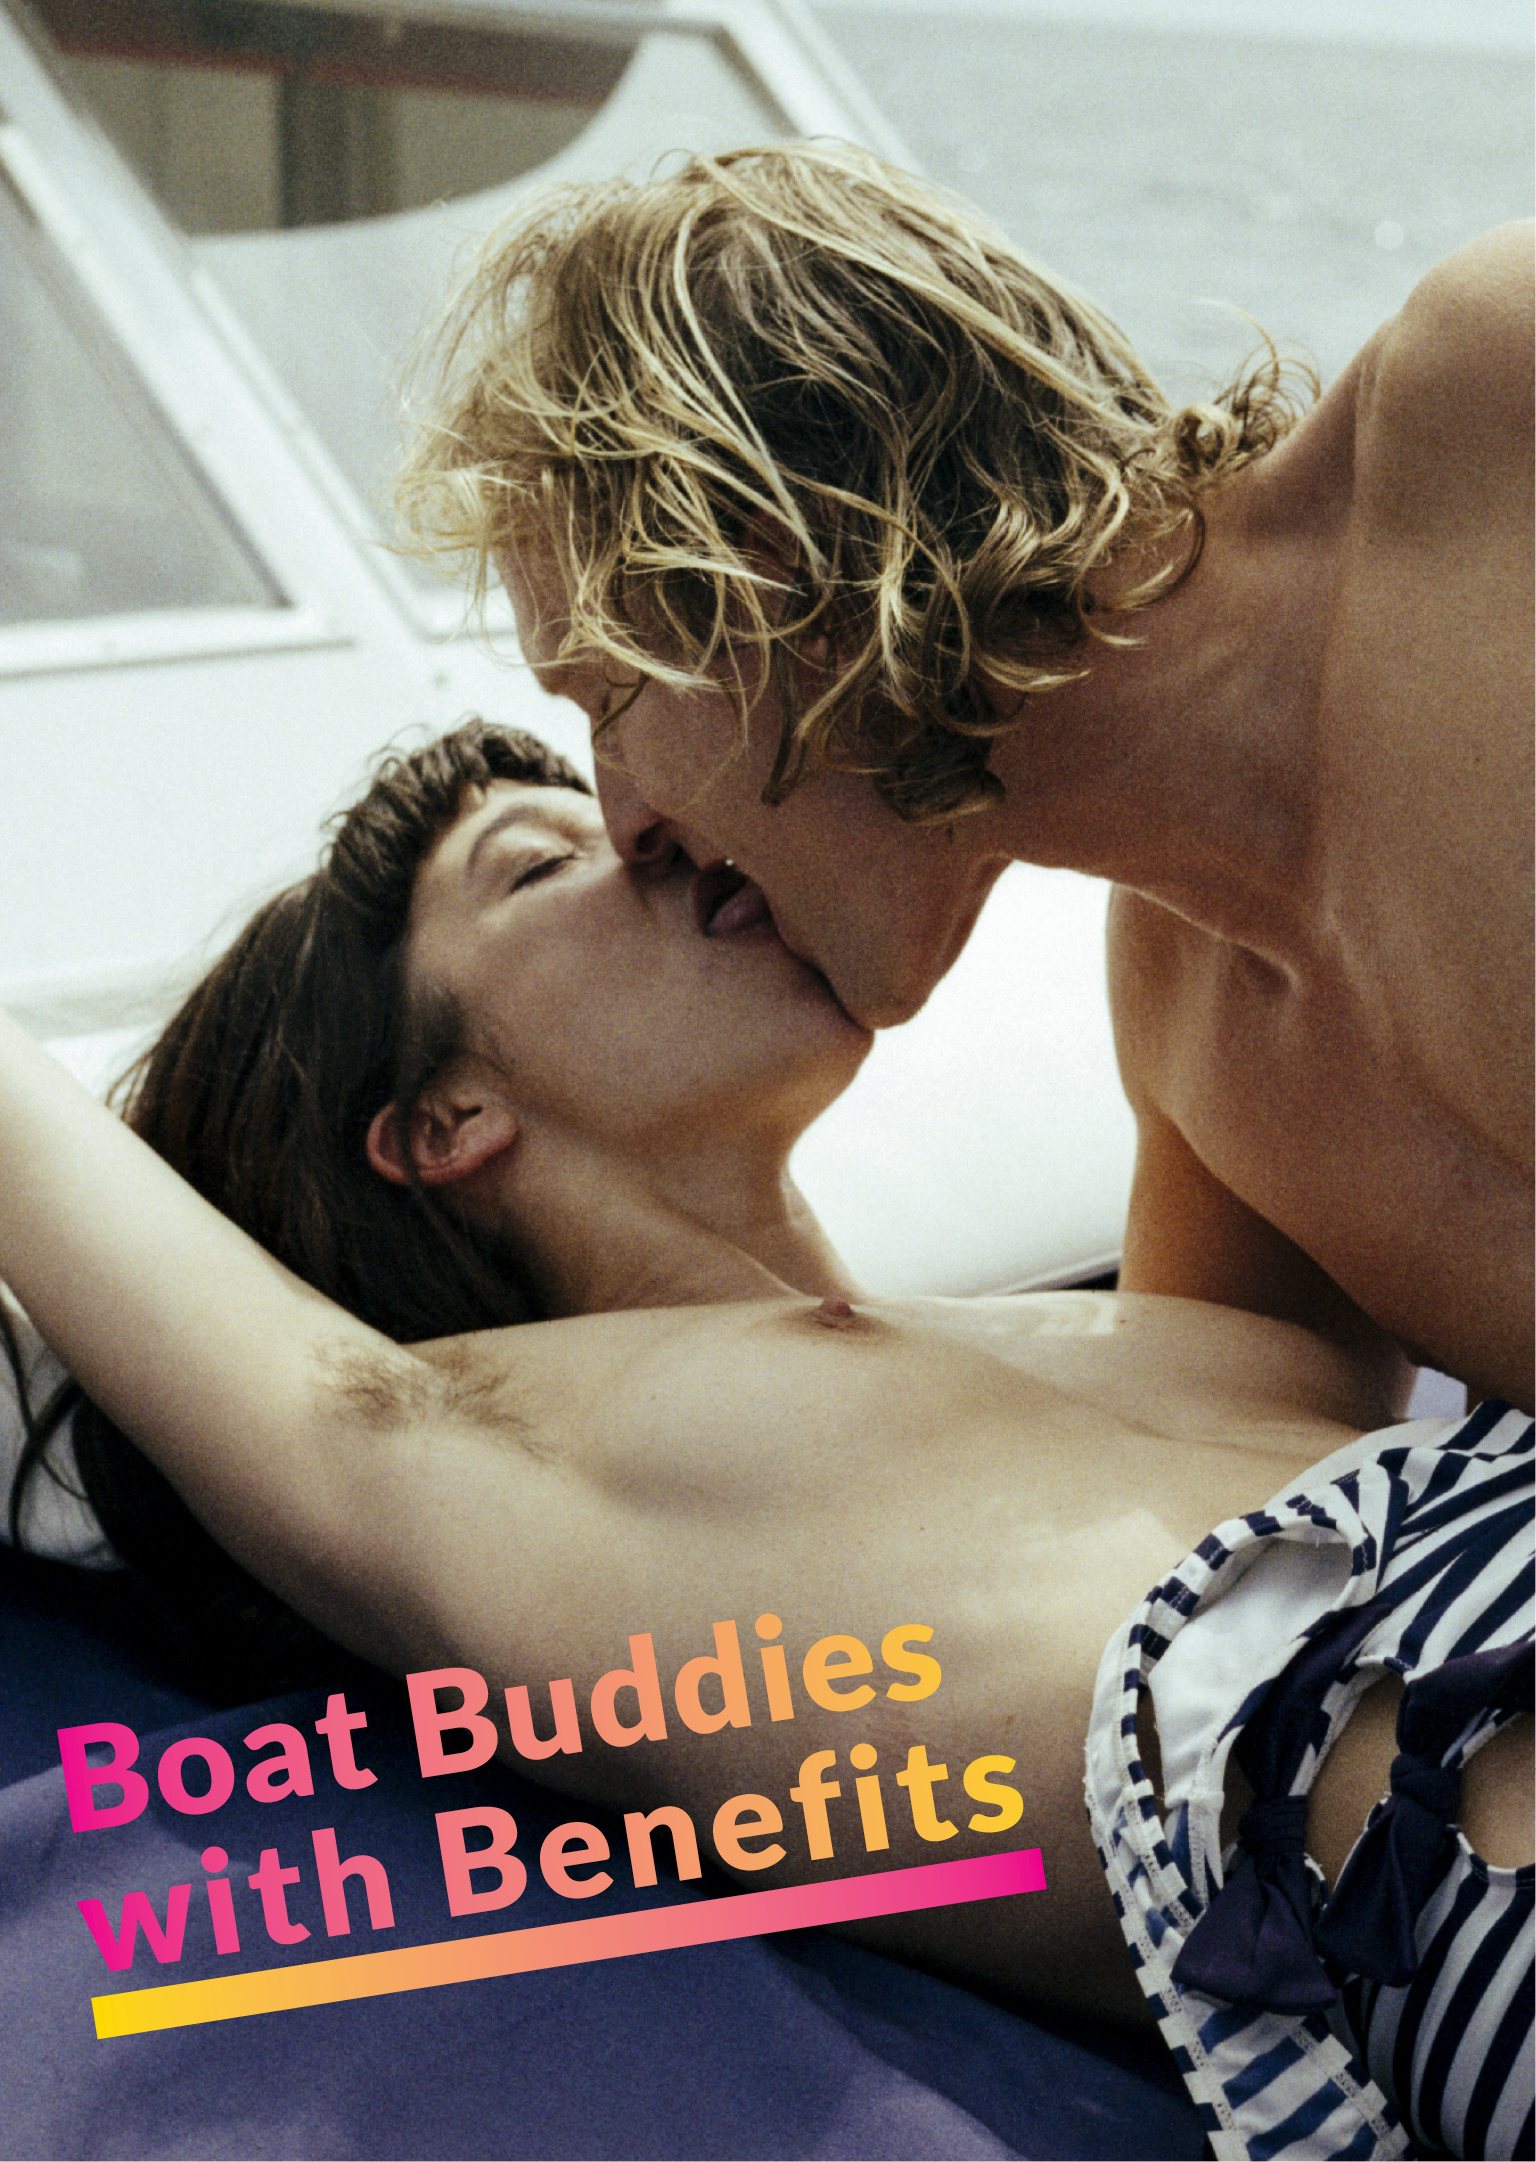 Xconfessions By Erika Lust, Boat Buddies With Benefits